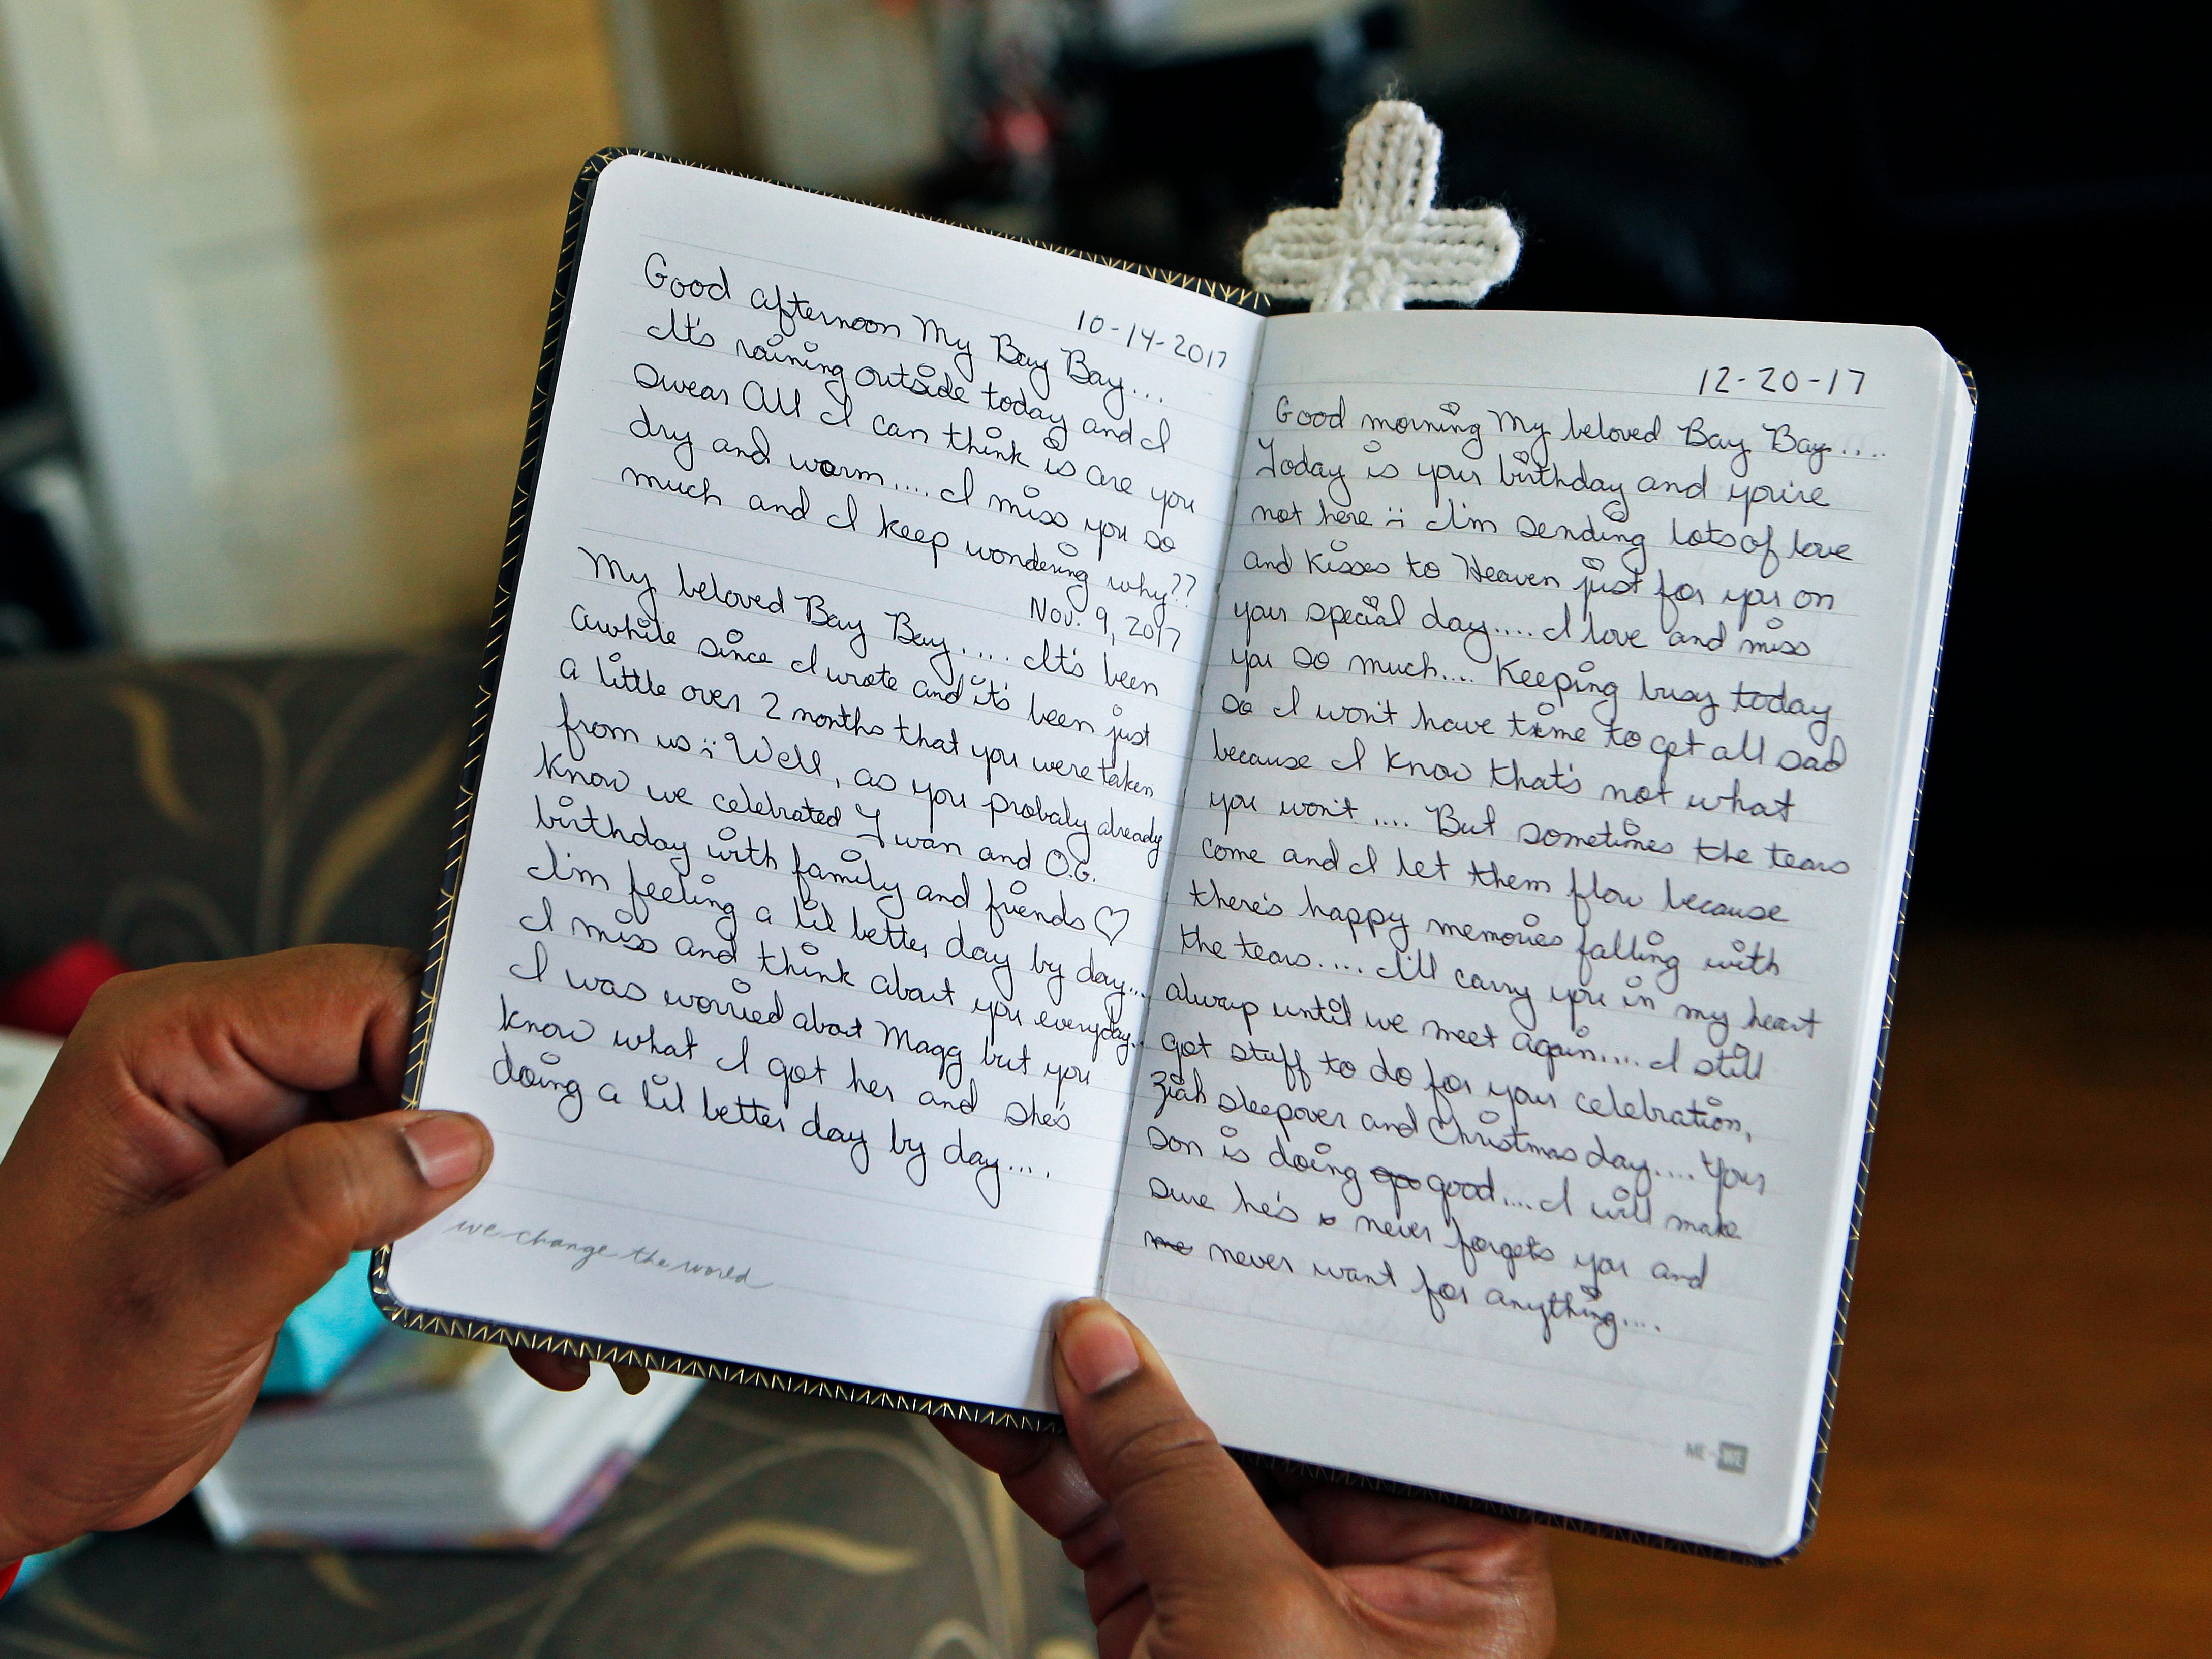 After the death of her son, Tanja Dixon began writing in a journal. She keeps a handful of notebooks and journals tucked around her house and in purses.